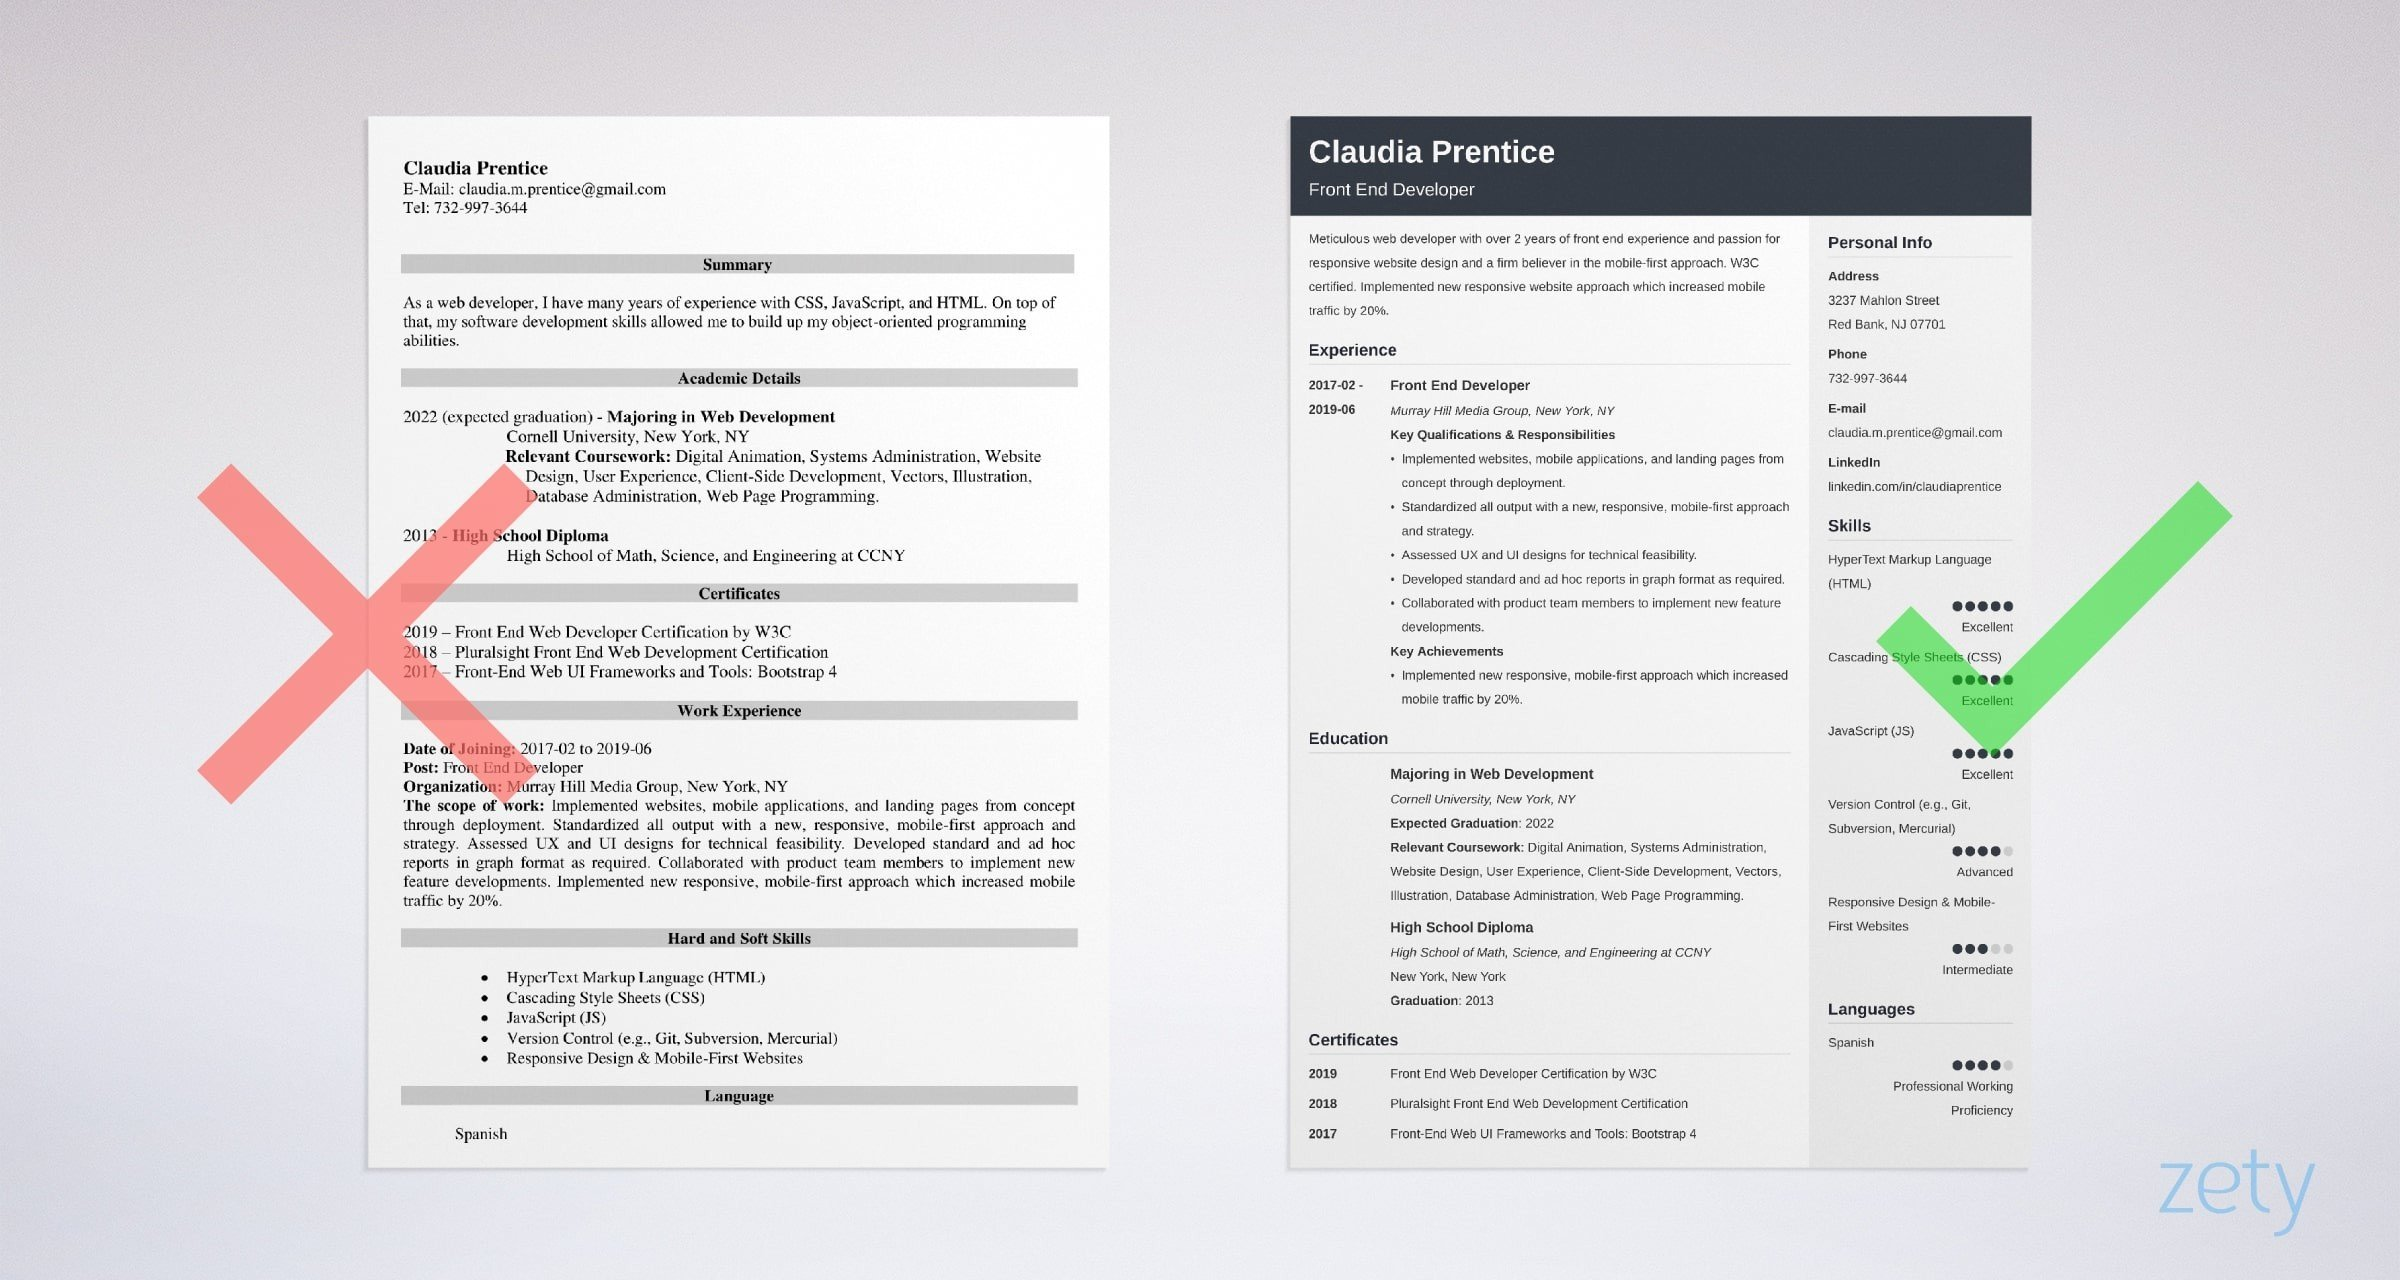 front end developer resume example guide tips current education conflict resolution Resume Front End Developer Resume Example